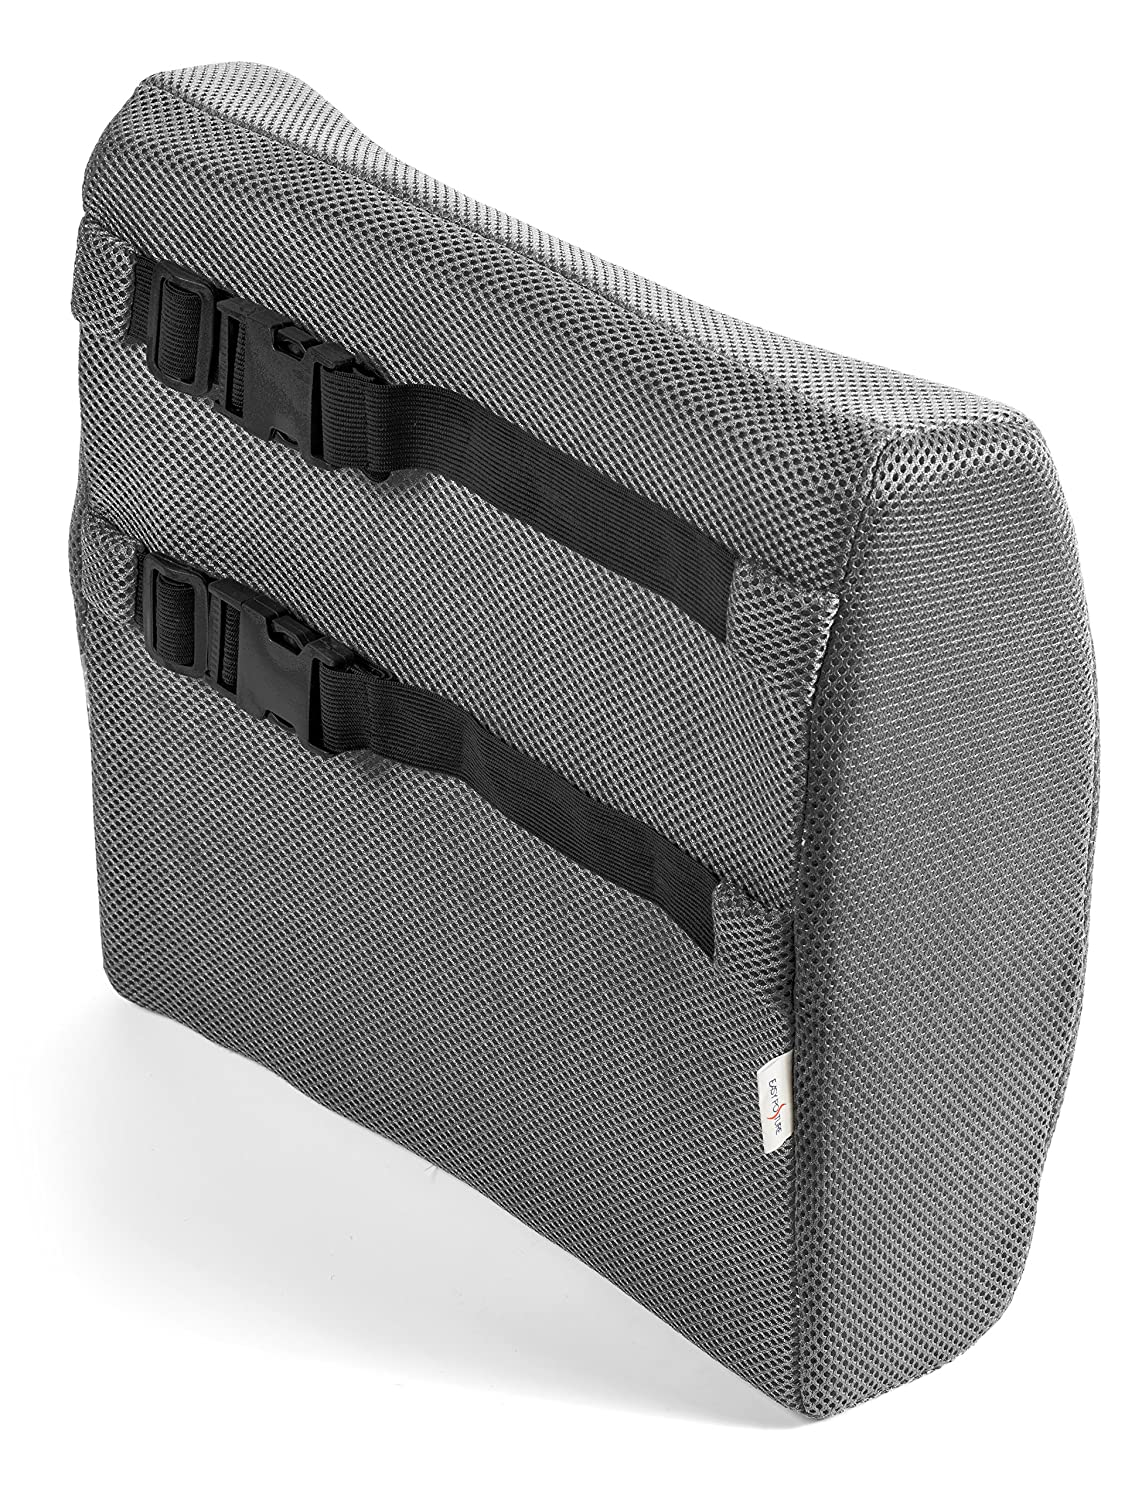 Amazon com black chair cushions - Amazon Com Easy Posture Memory Foam Lumbar Support Cushion Back Pillow For Office Chair Or Car Seat Gray Health Personal Care